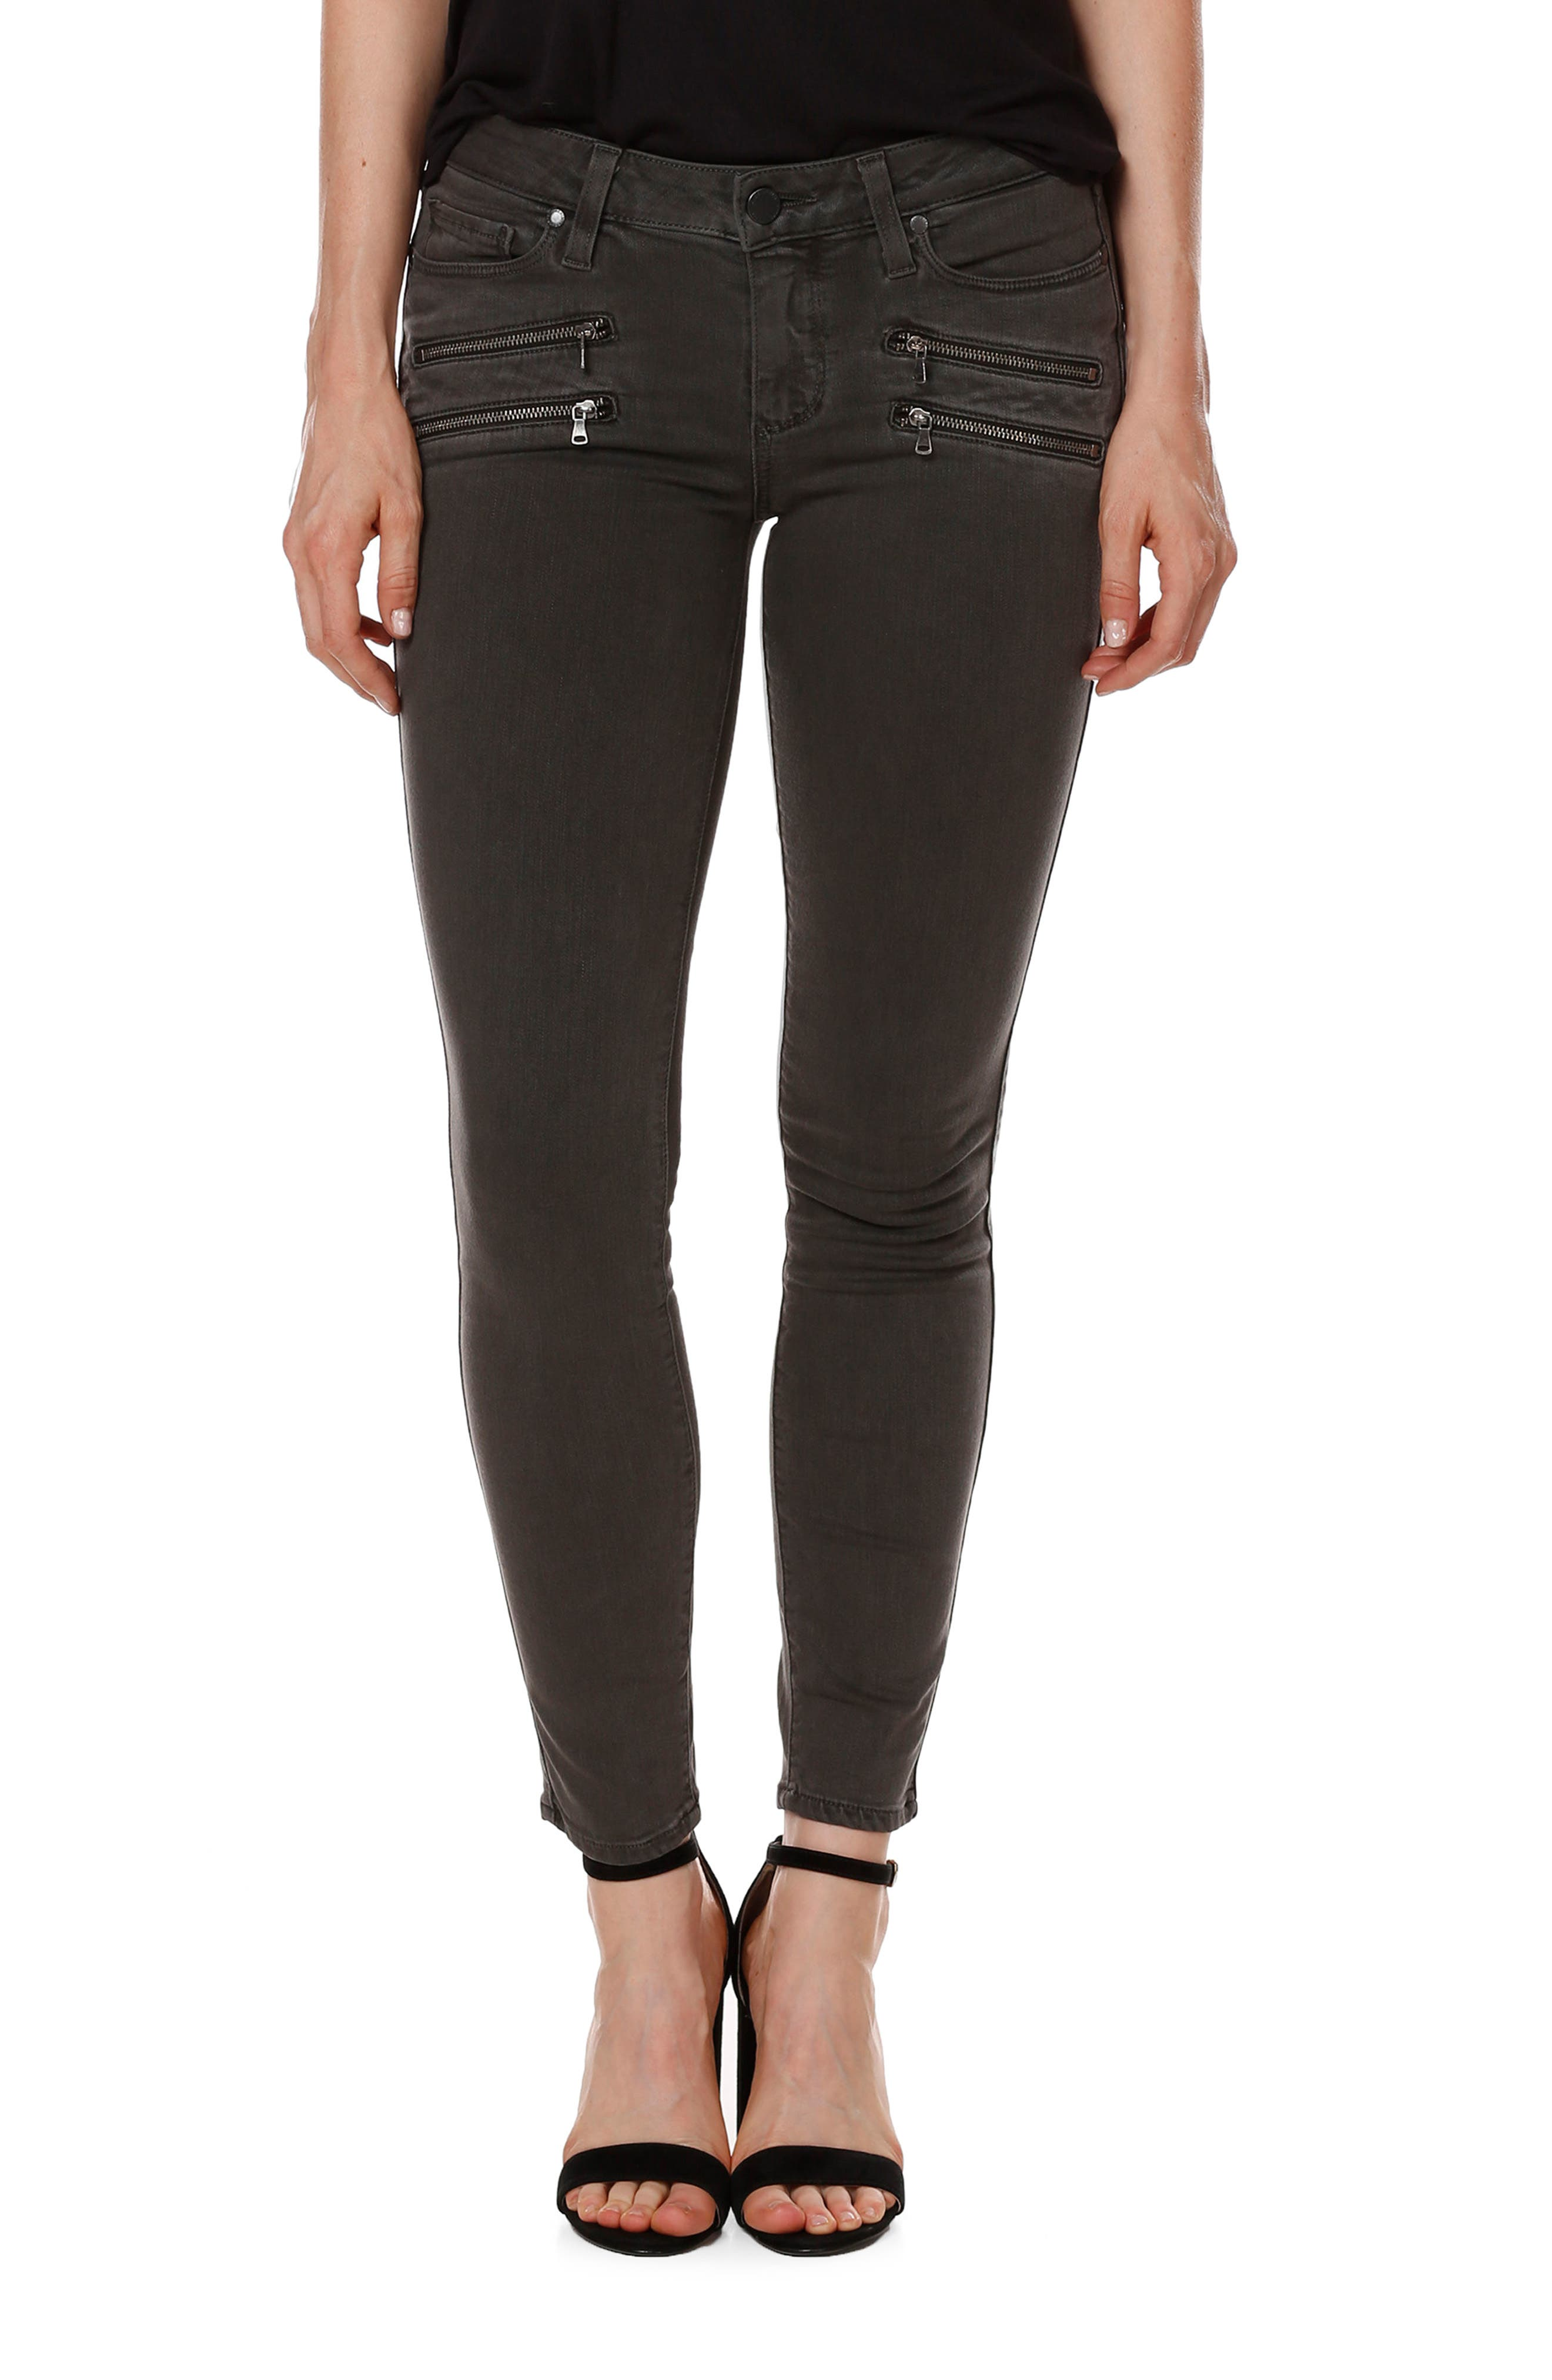 Transcend - Edgemont Ankle Ultra Skinny Jeans,                         Main,                         color, Coal Grey